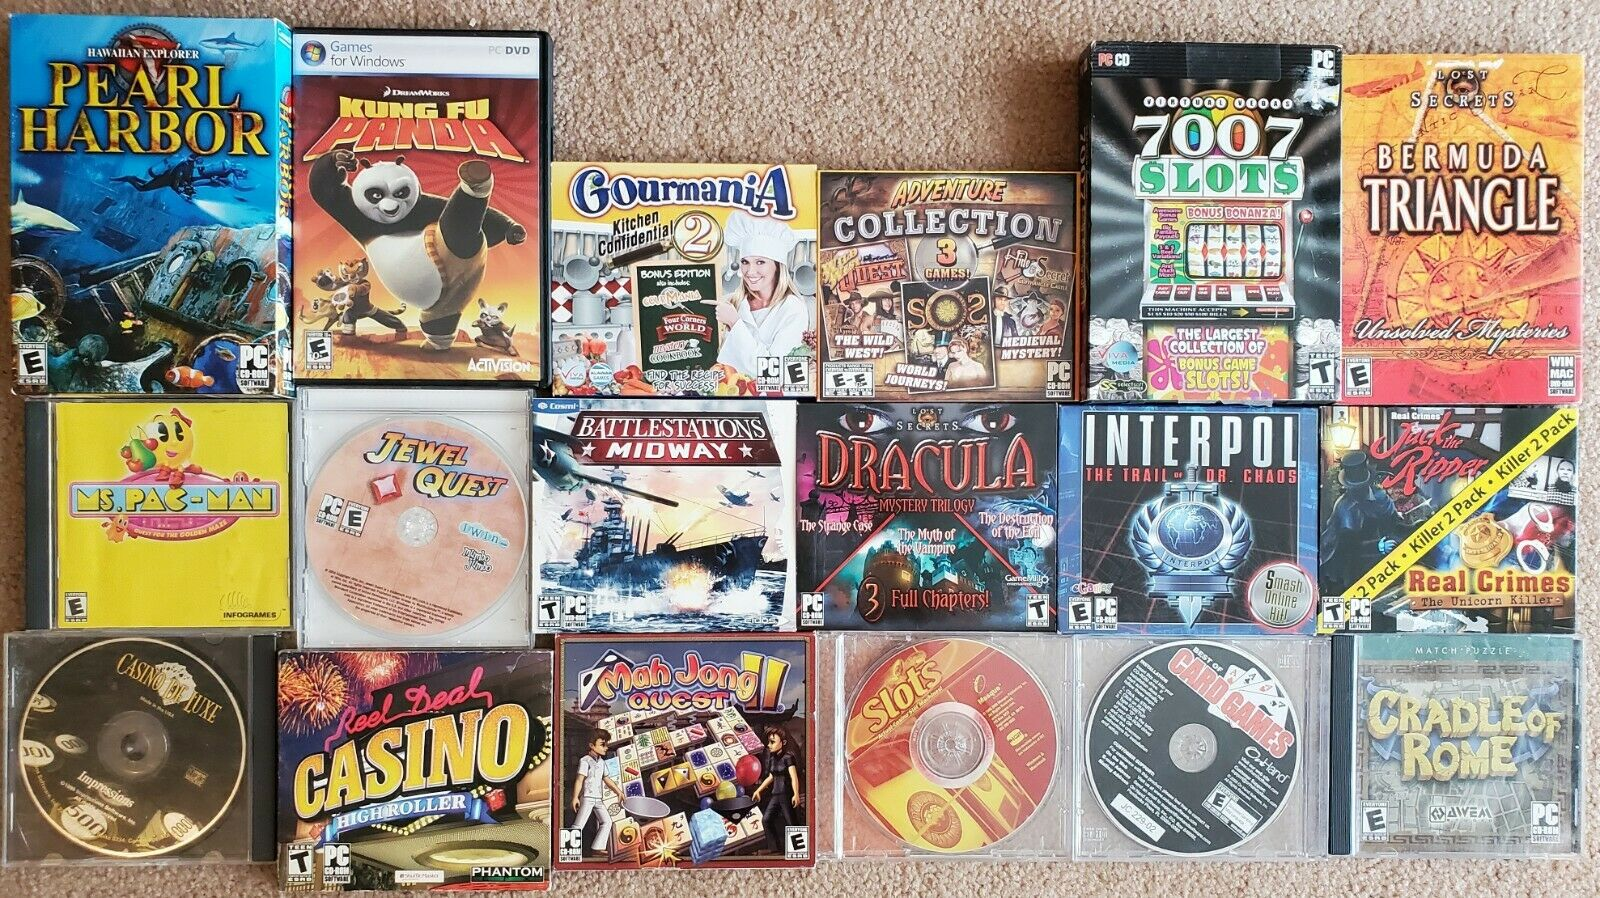 Computer Games -  Lot of 18 PC Computer Games Adventures /Casino /Mysteries /Cooking / Arcade etc